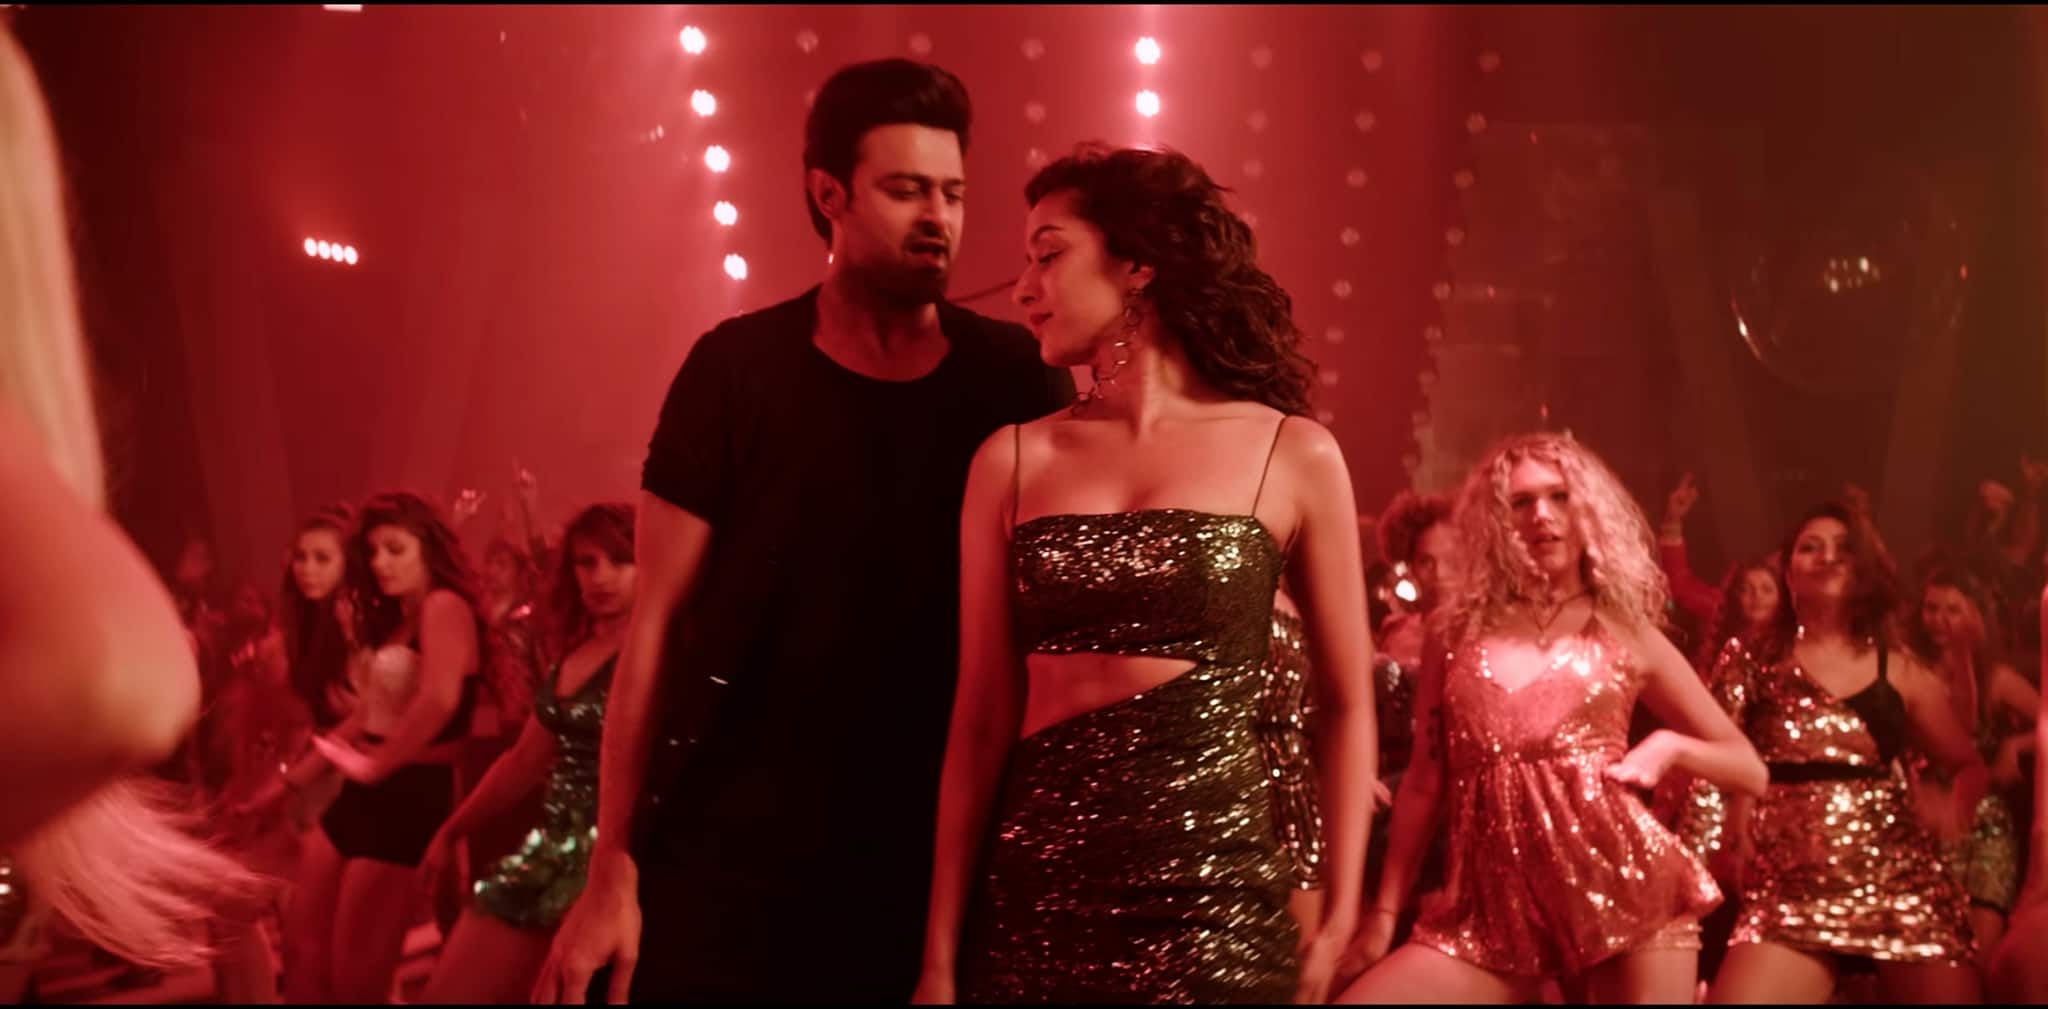 Saaho Psycho Saiyaan Song: Prabhas And Shradhha's Chemistry Looks Fun In This Weirdly Catchy Number